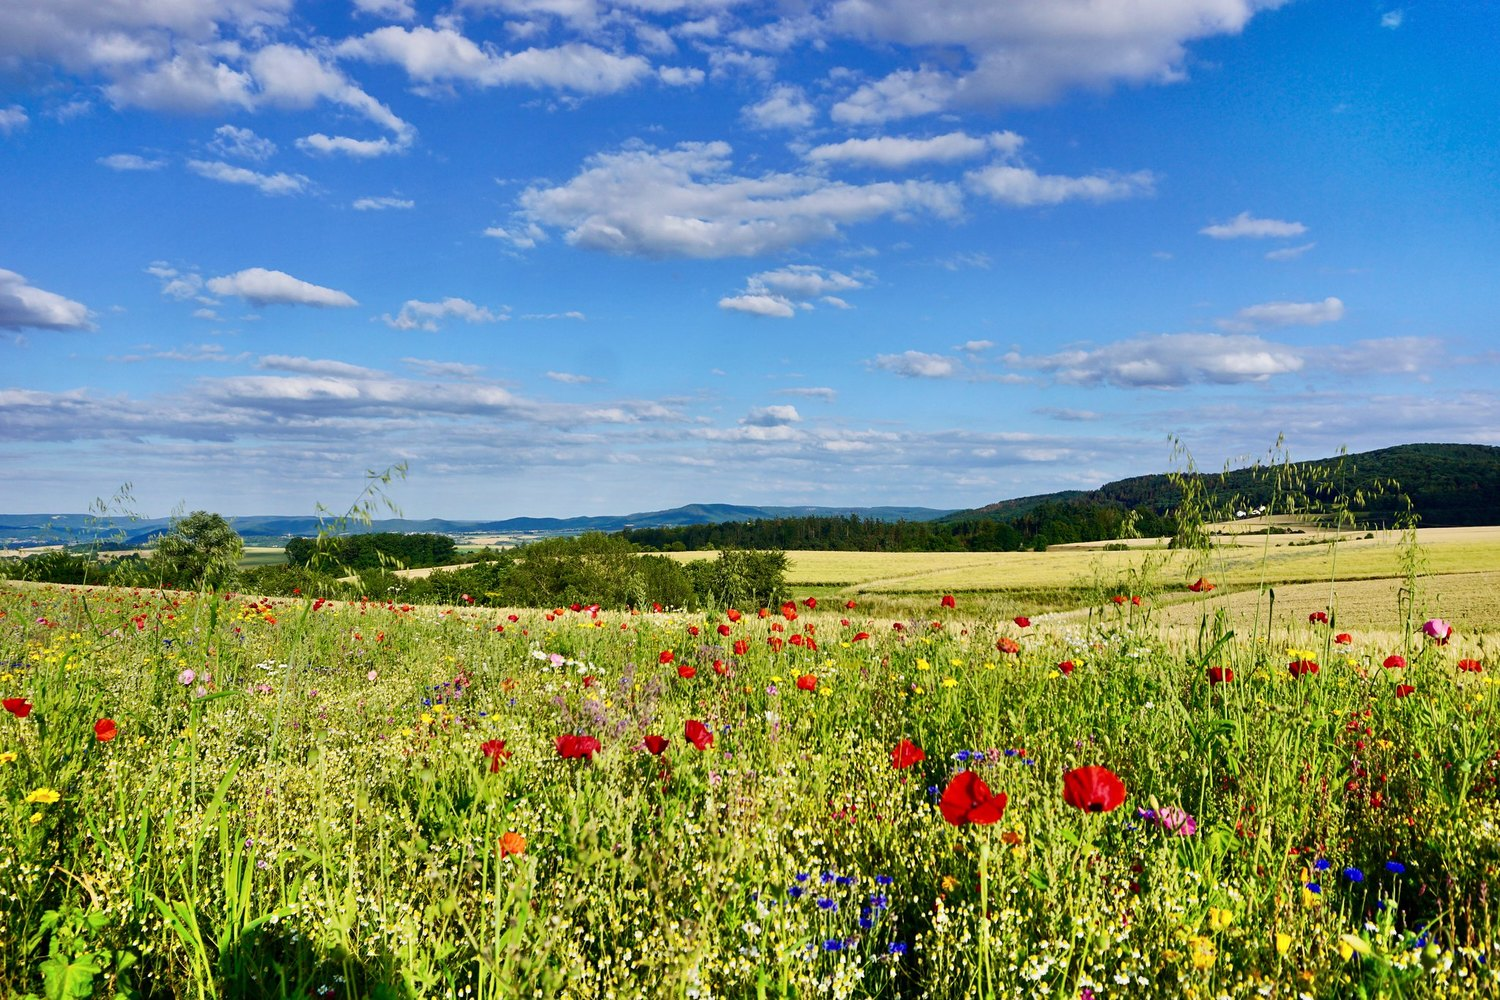 Biodiversity in agriculture. EU reform plans weaken the environment, researchers say.